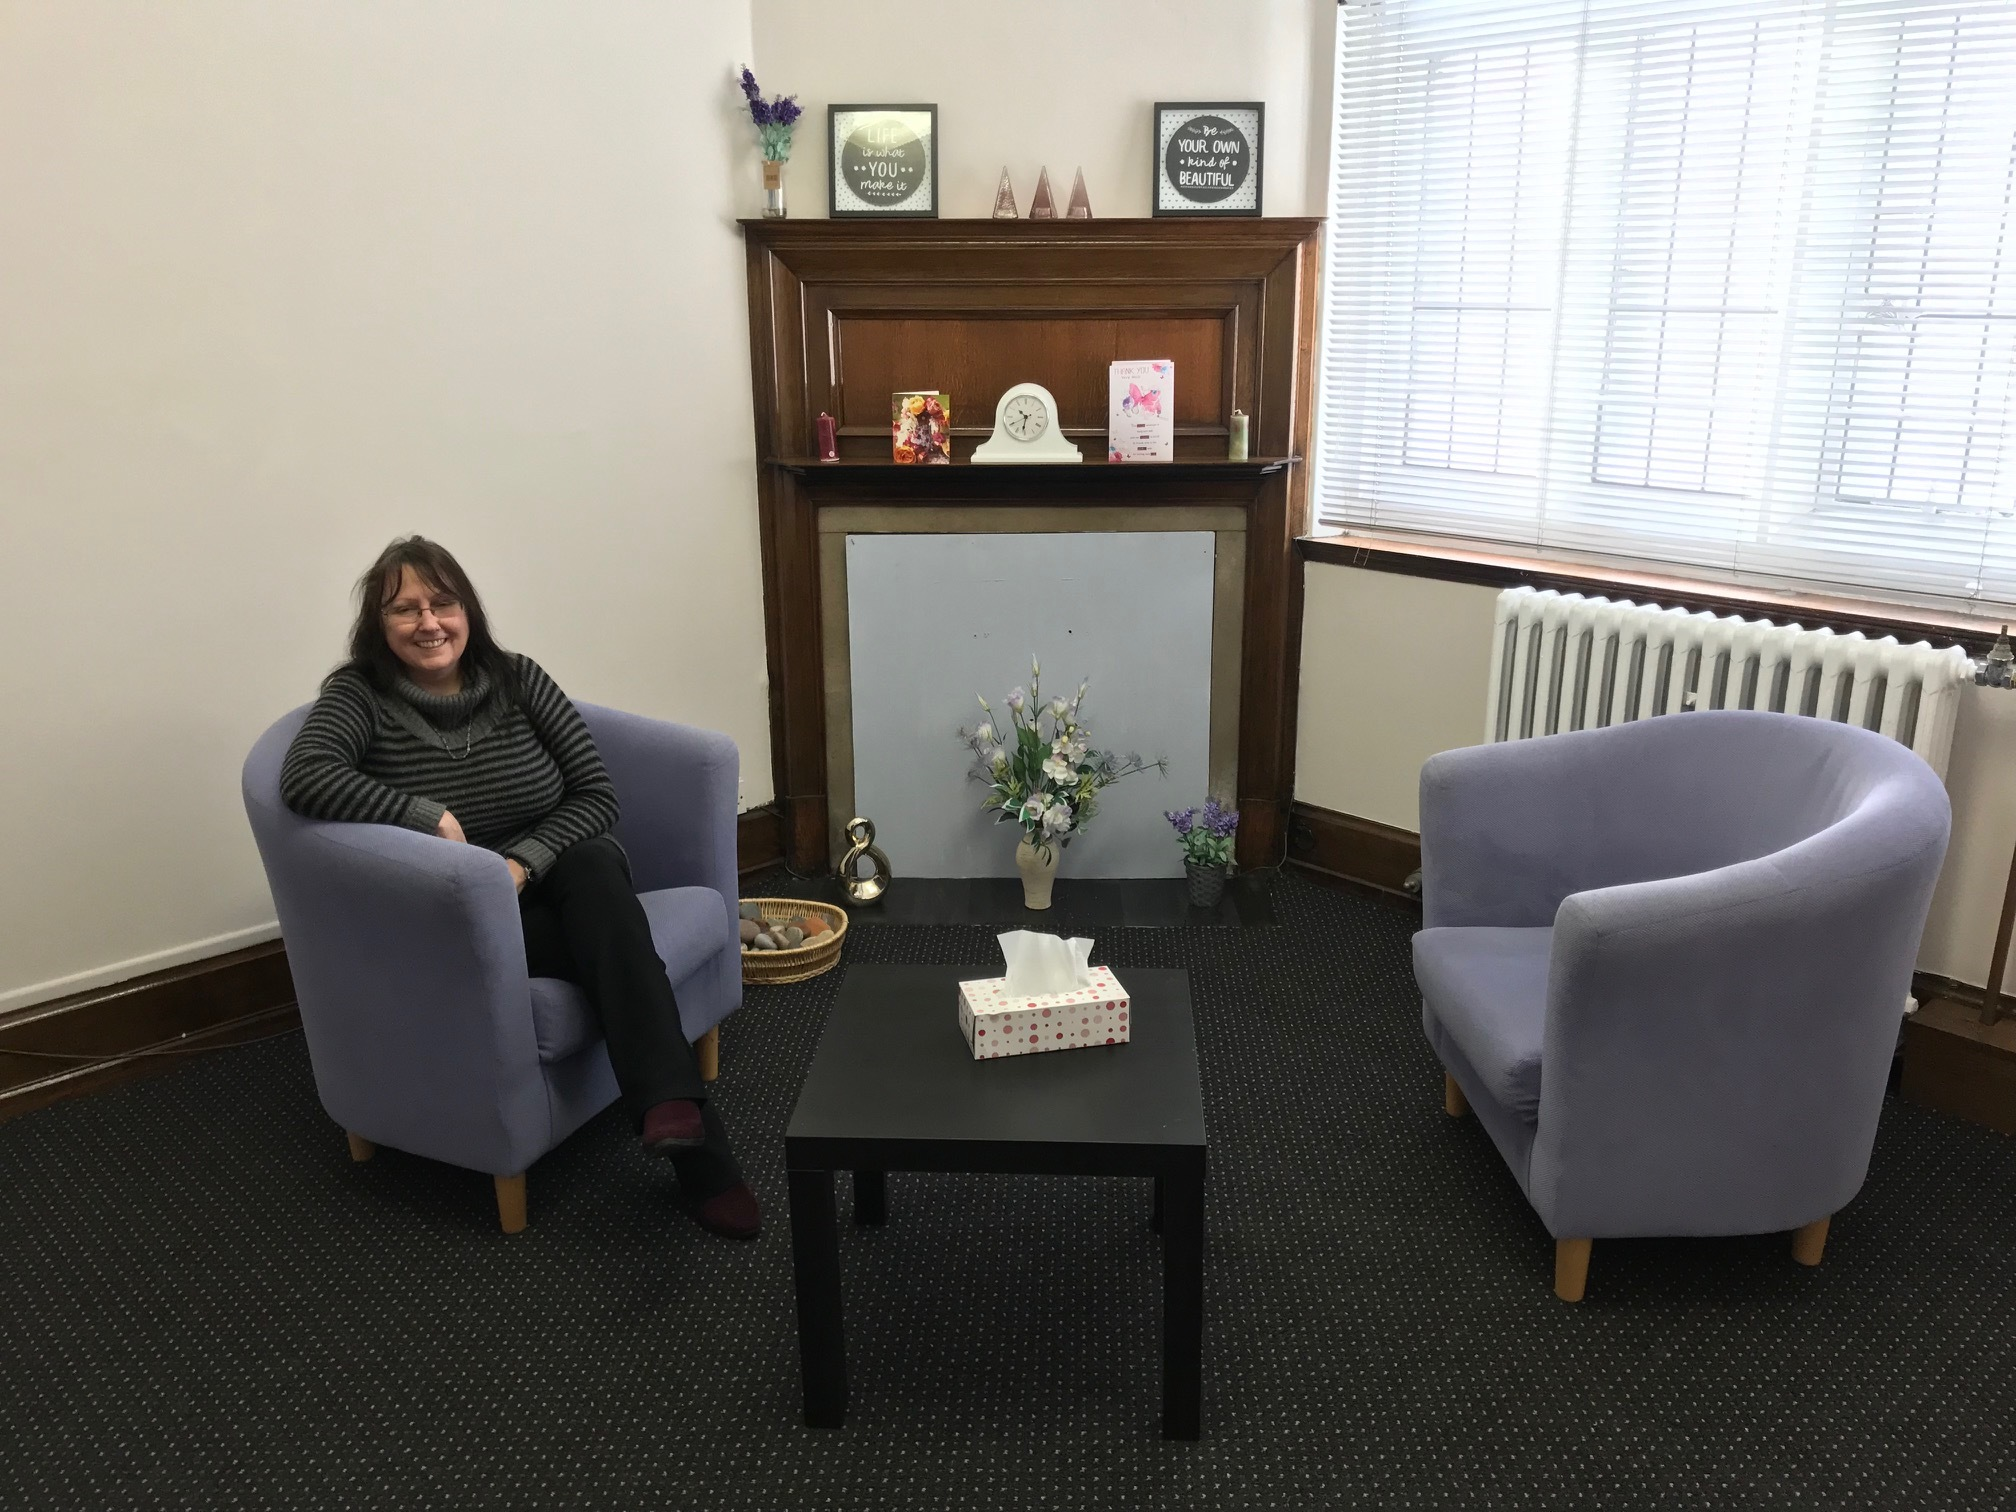 Cllr Luan Deakin, Shildon Town Mayor, runs a counselling charity in Shildon called The Sanctuary which is searching for funding.	           Picture:STACEY-LEE CHRISTON